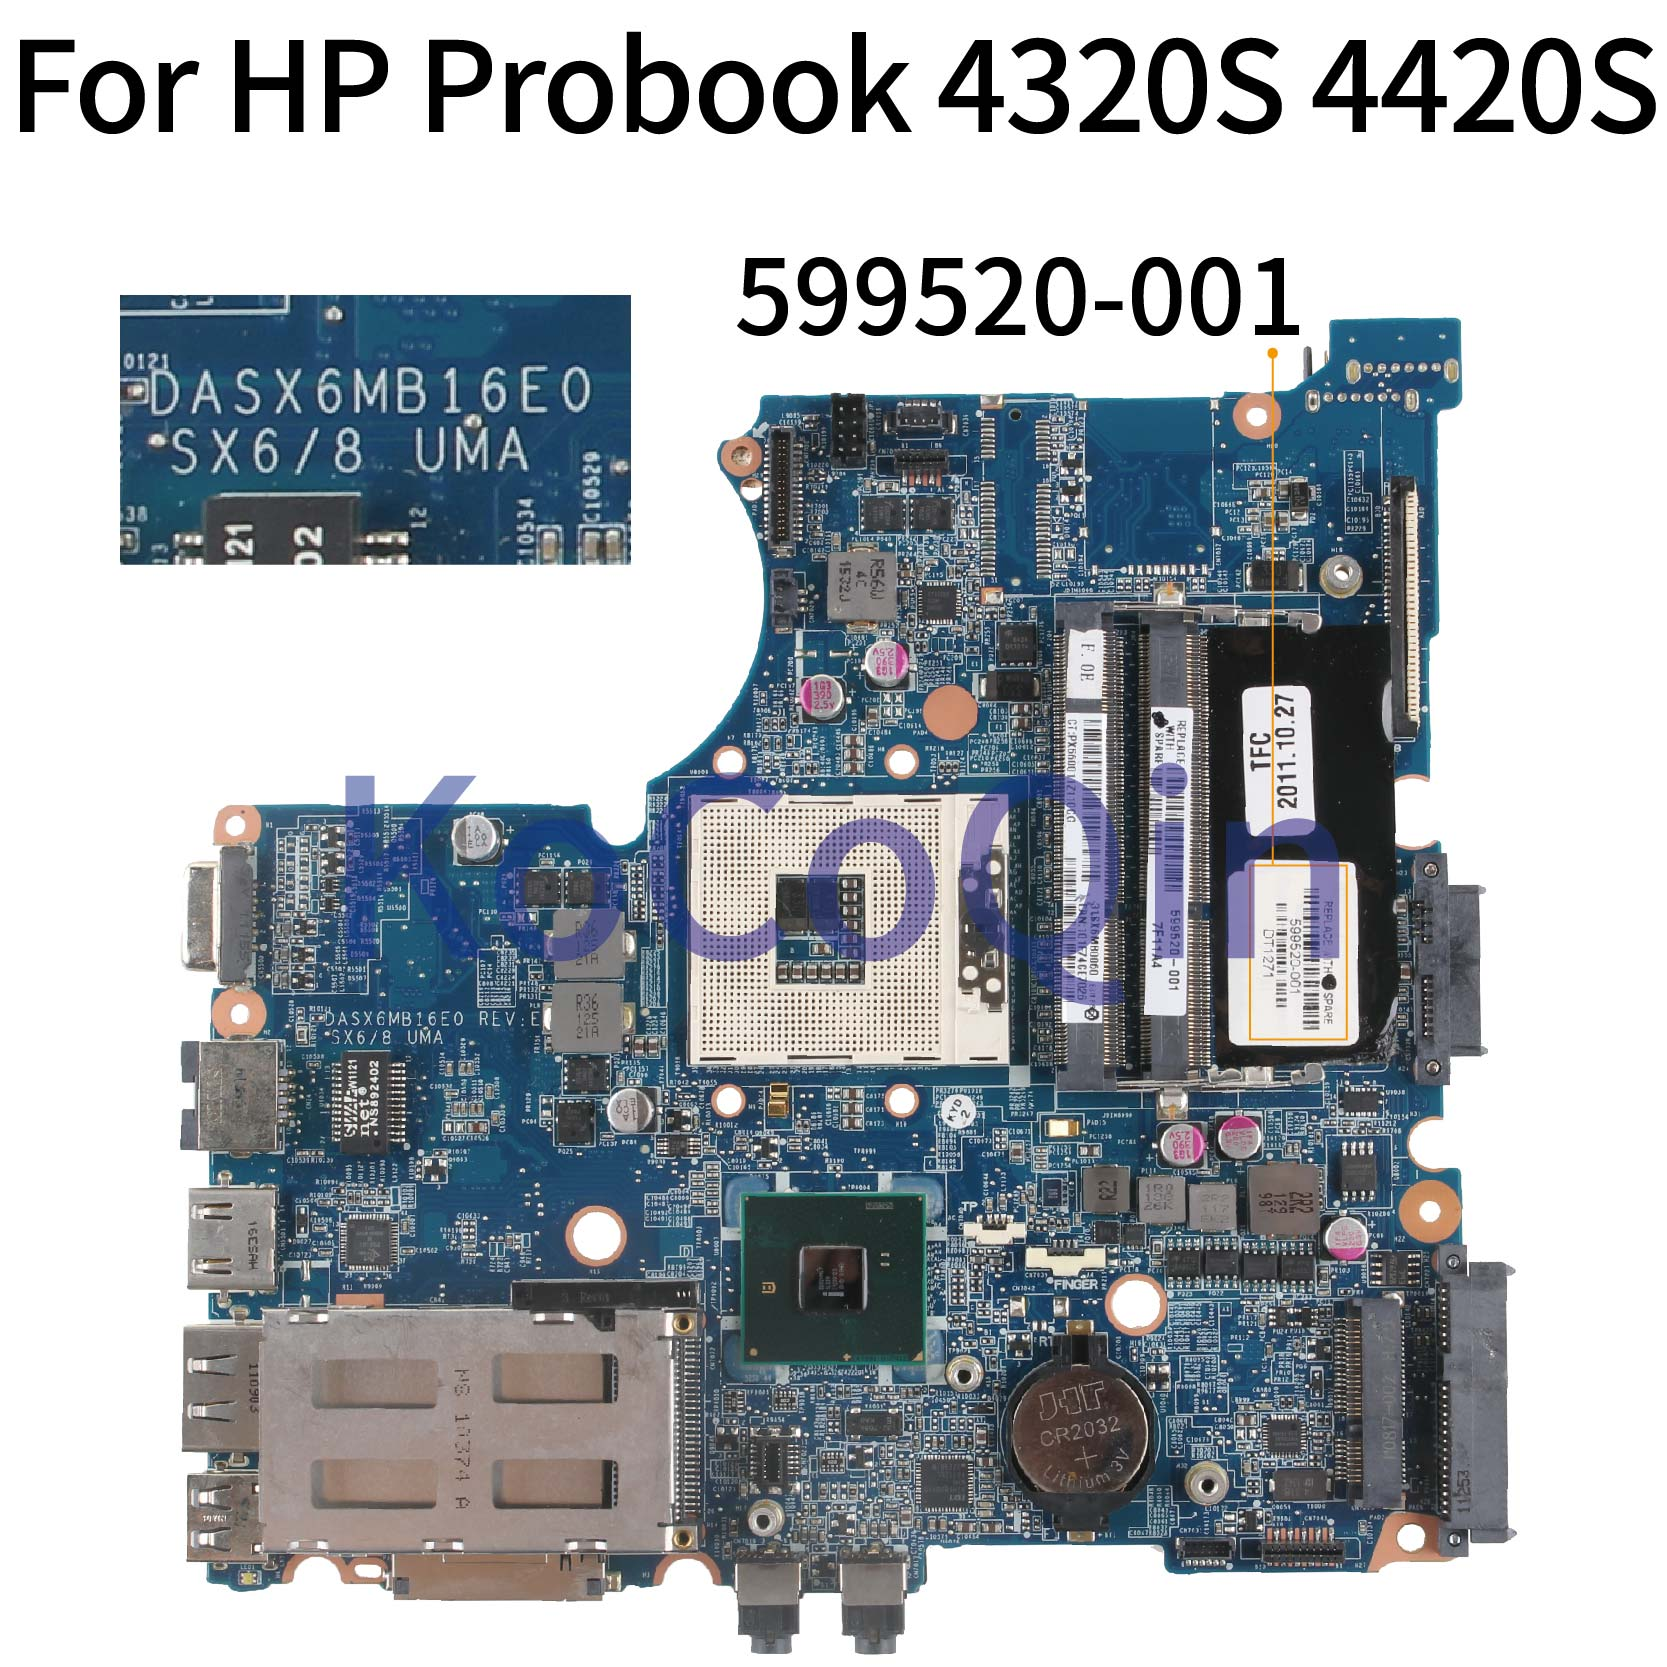 KoCoQin Laptop Motherboard For HP Probook 4320S 4321S 4420S HM57 Mainboard 599520-001 599520-001 DASX6MB16E0 DDR3